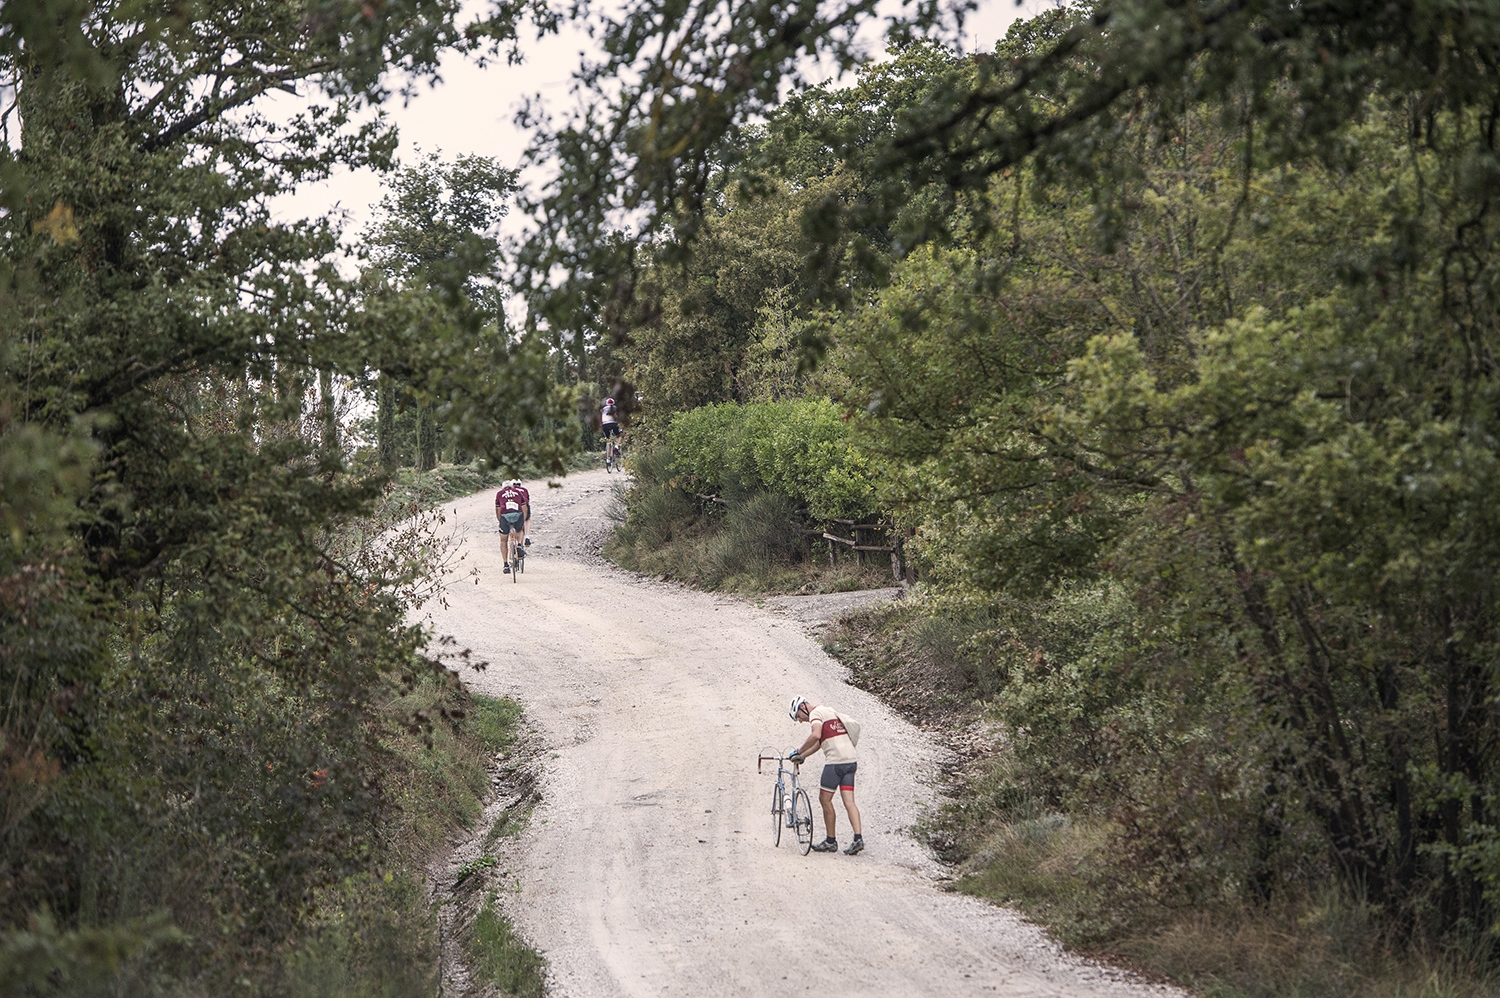 White roads and climbs: the typical eroica